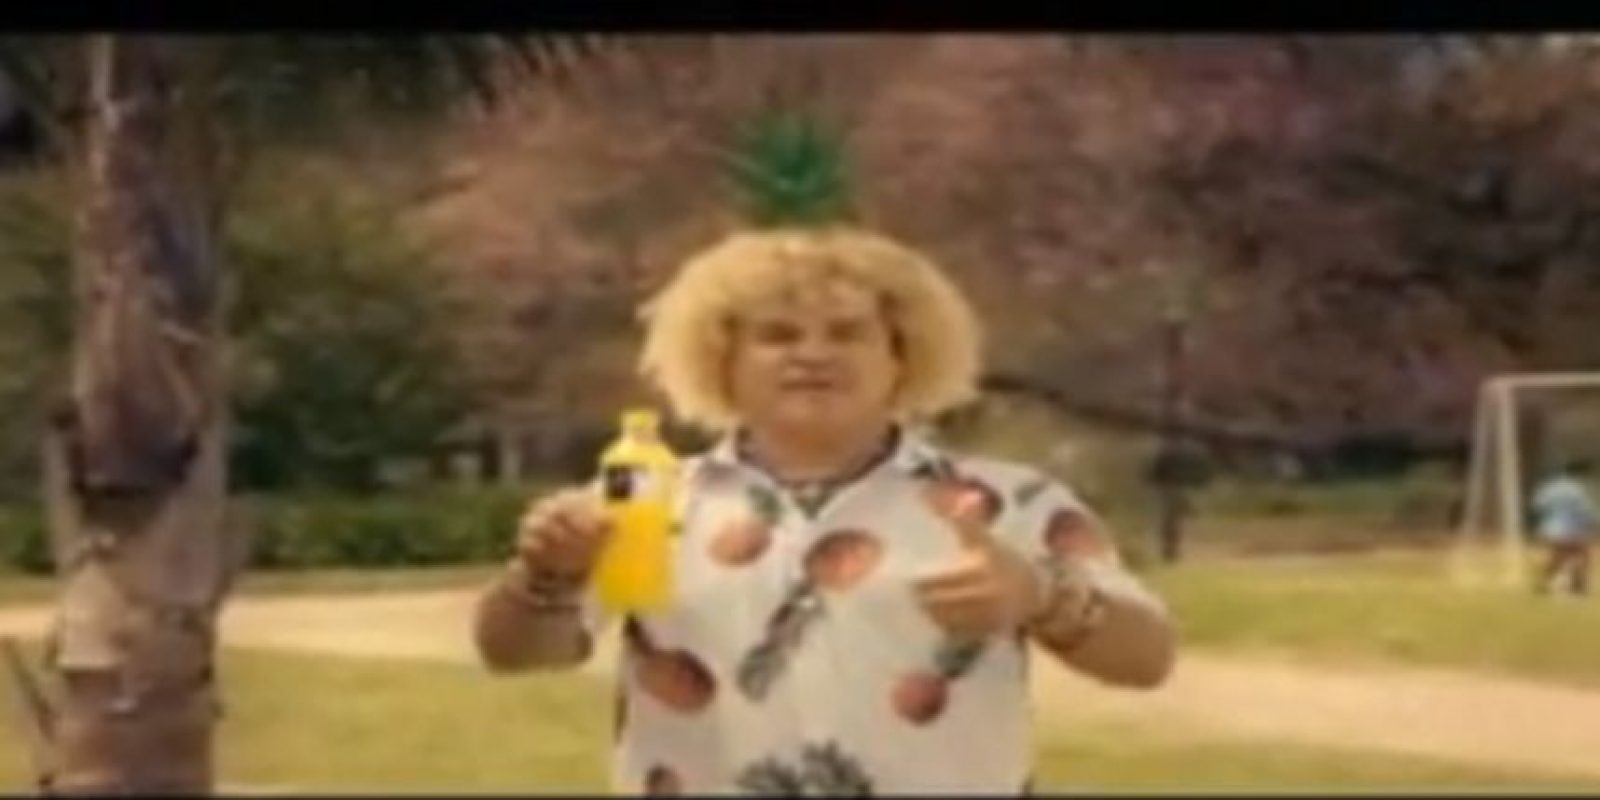 Carlos el Pibe Valderrama. Big Cola de piña Foto: Captura de Youtube